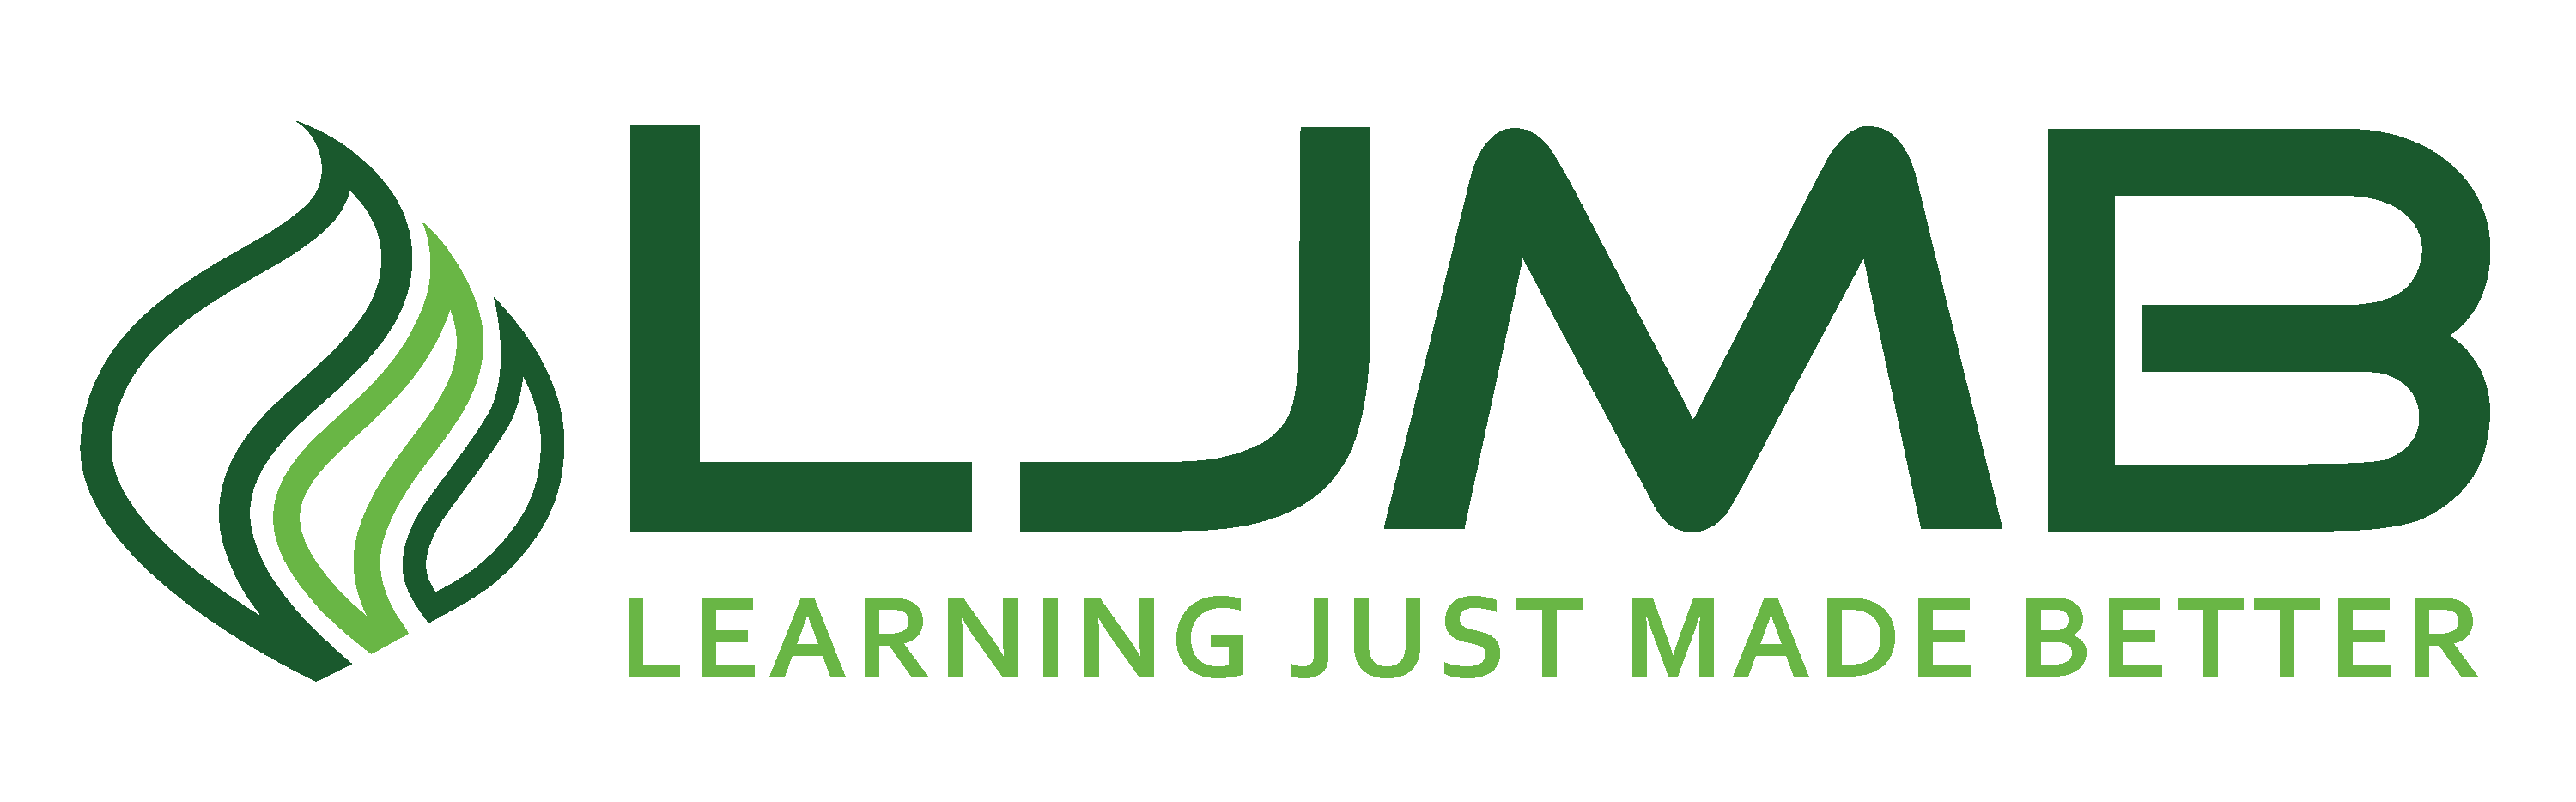 Learning Just Made Better, Inc.